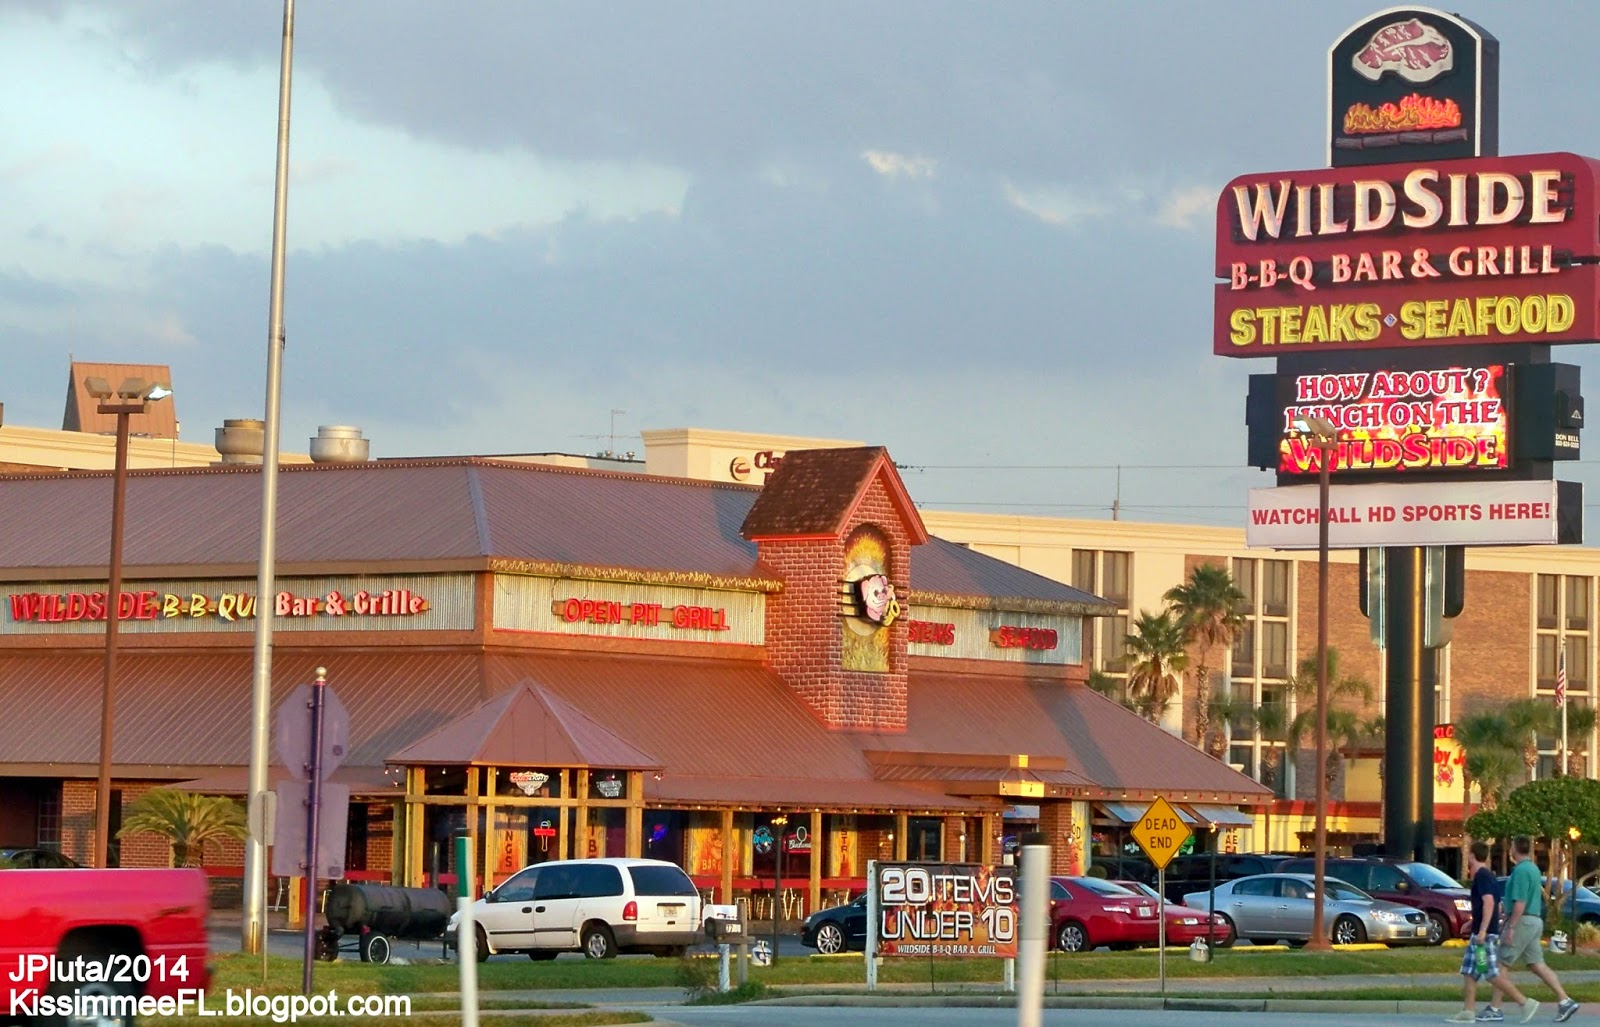 Wildside Bbq Bar Grill Restaurant Kissimmee Florida W Irlo Bronson Memorial Hwy Barbecue Steak Seafood Casual Dining